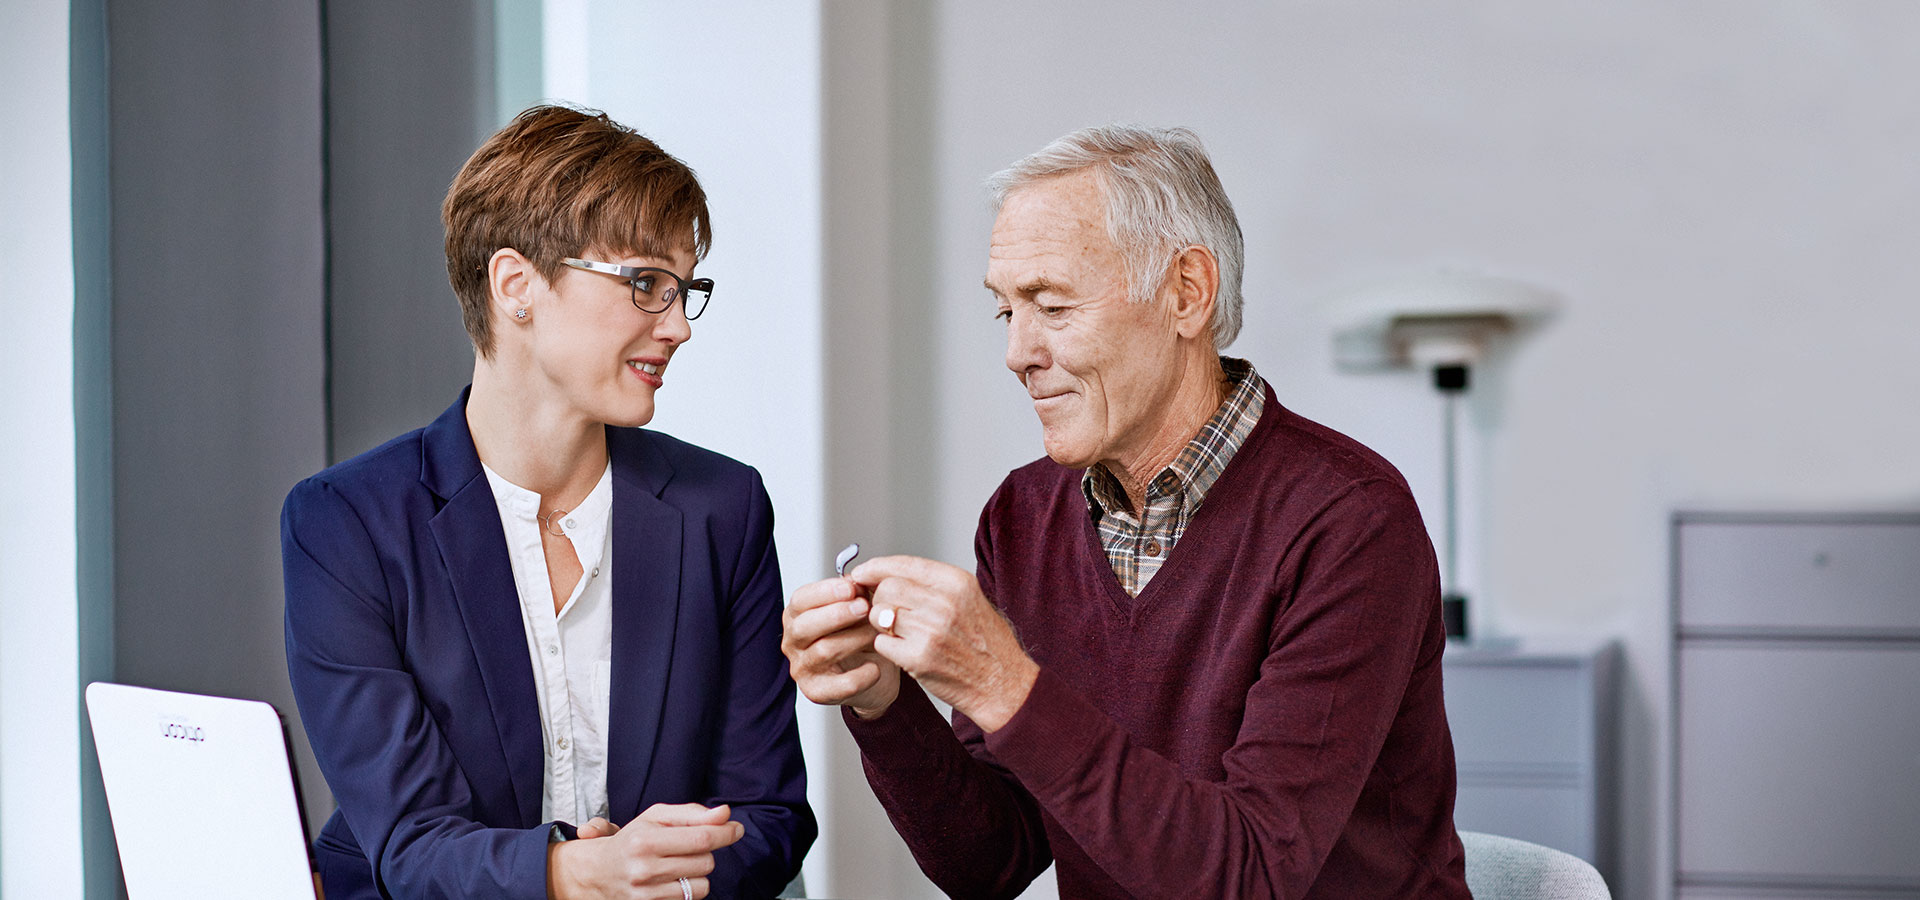 woman helping man with hearing aid